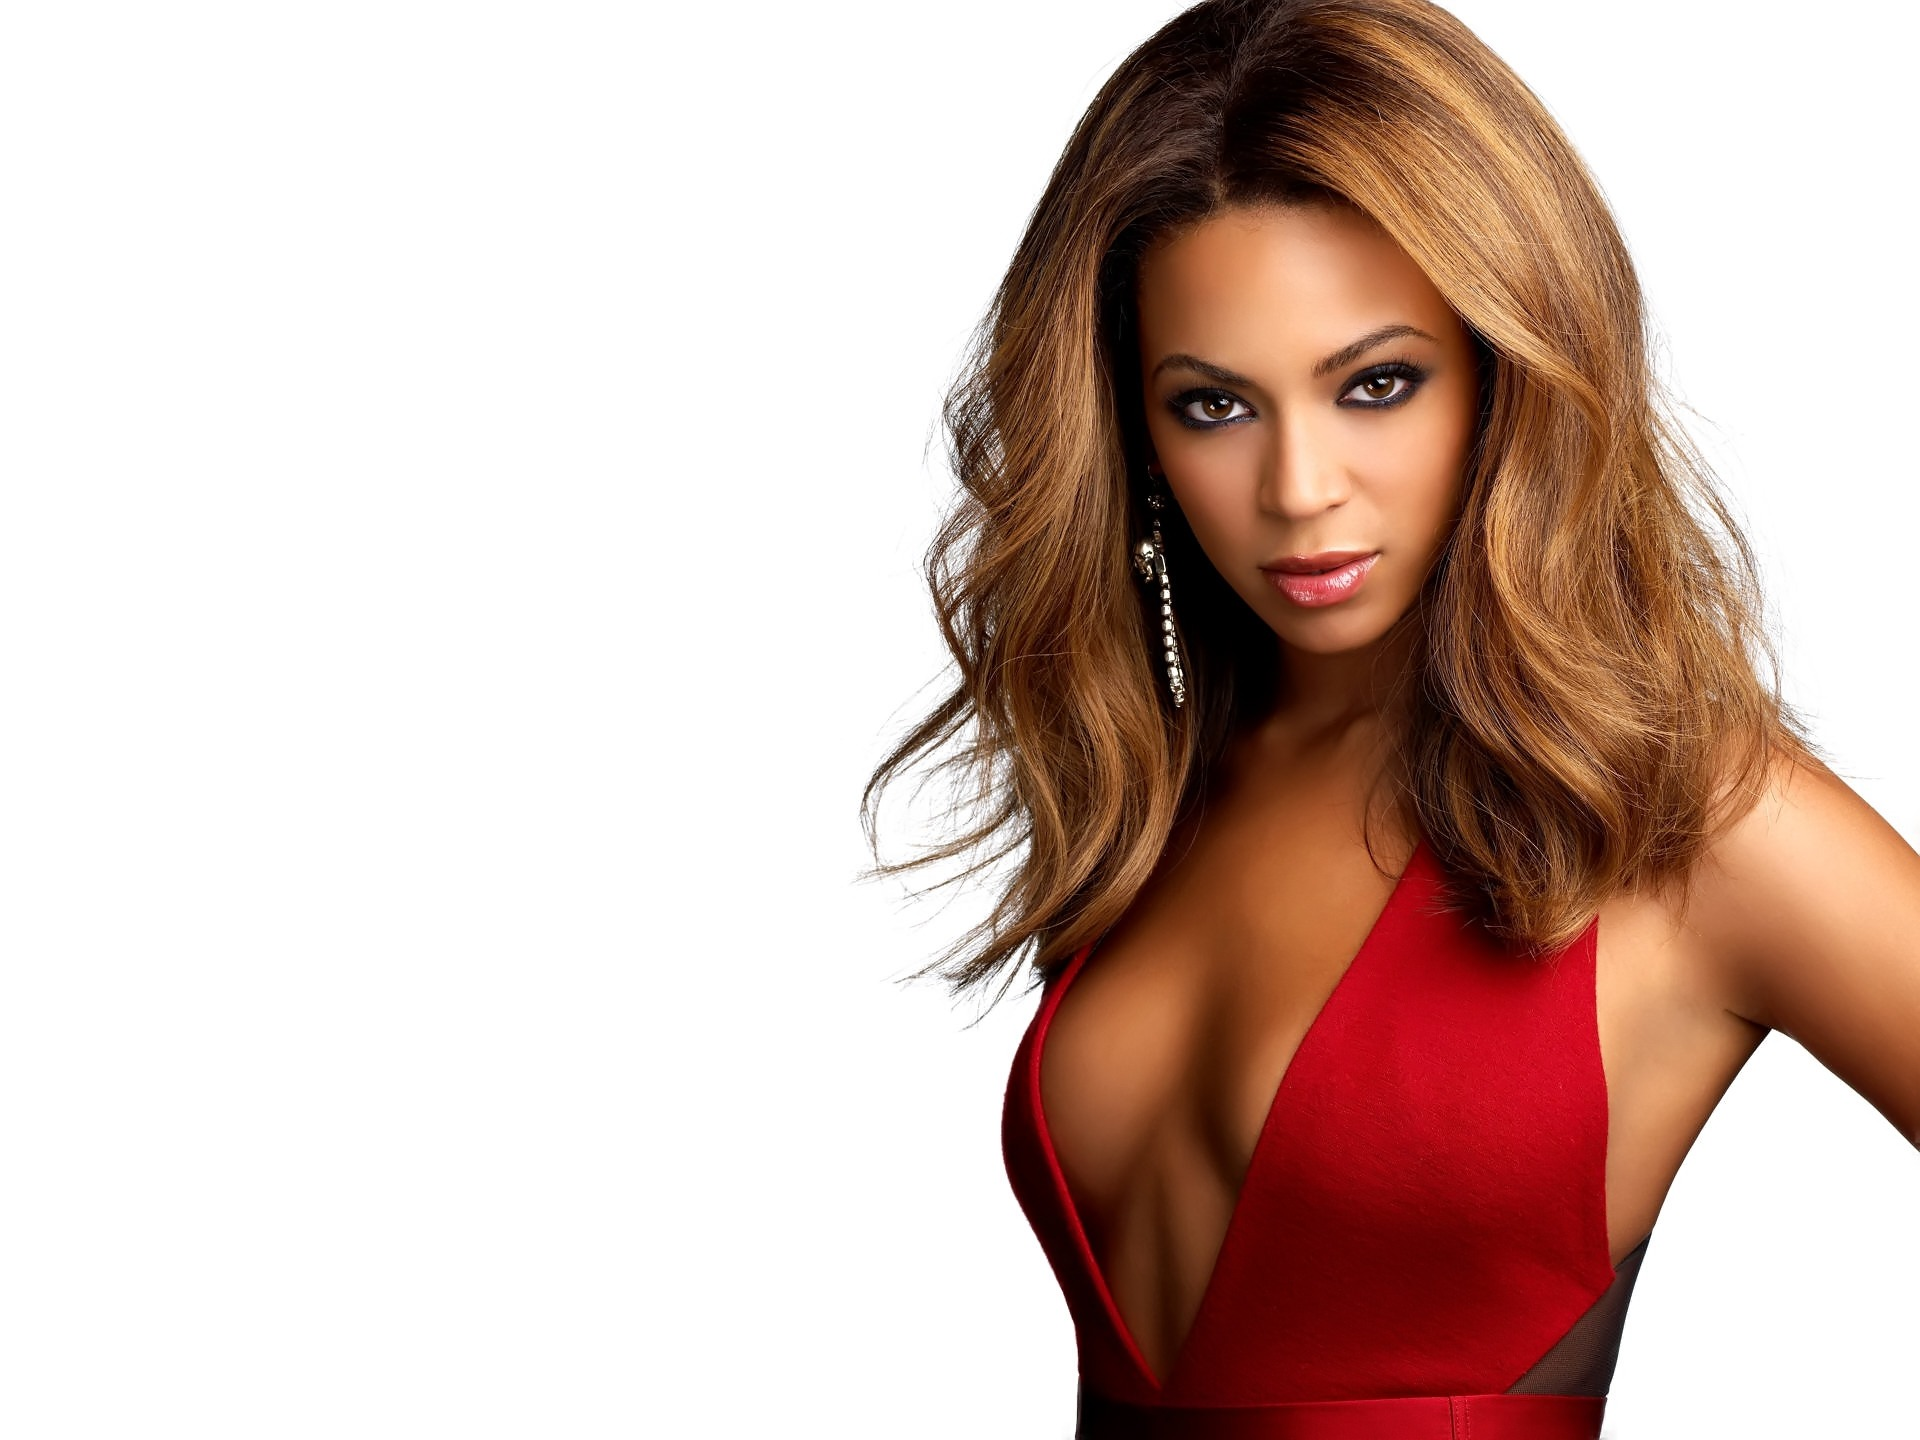 Beyonce beautiful Wallpaper Beyonce Female celebrities Wallpapers